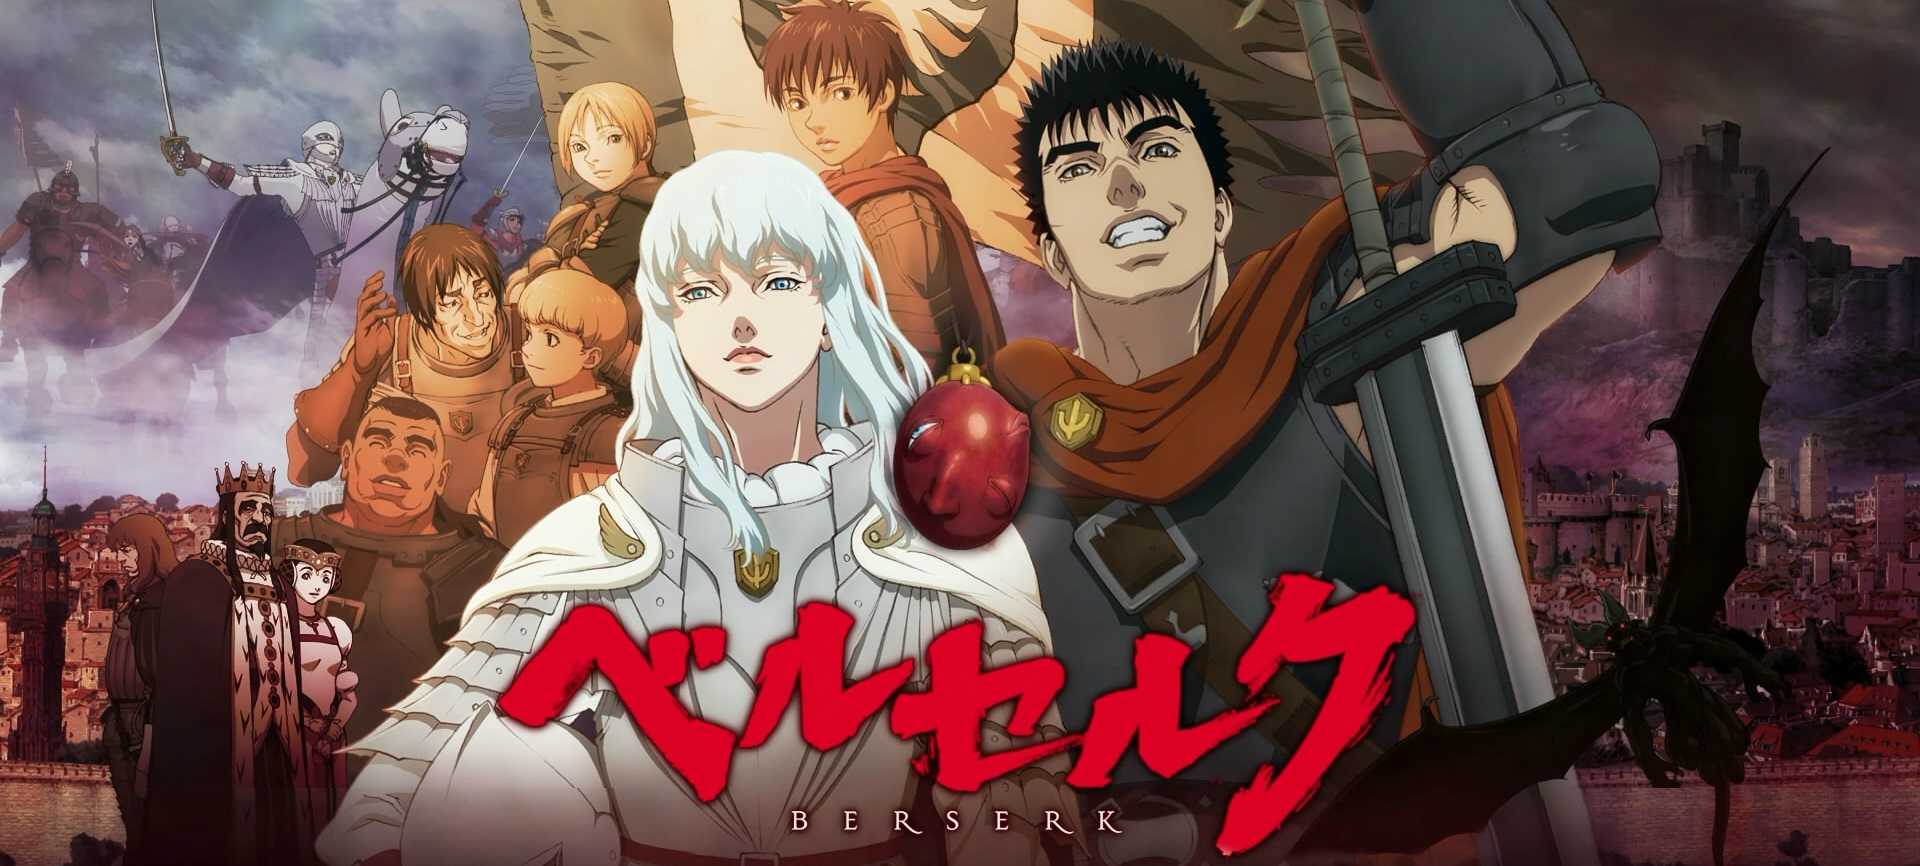 berserk goldenage 1 titlecard